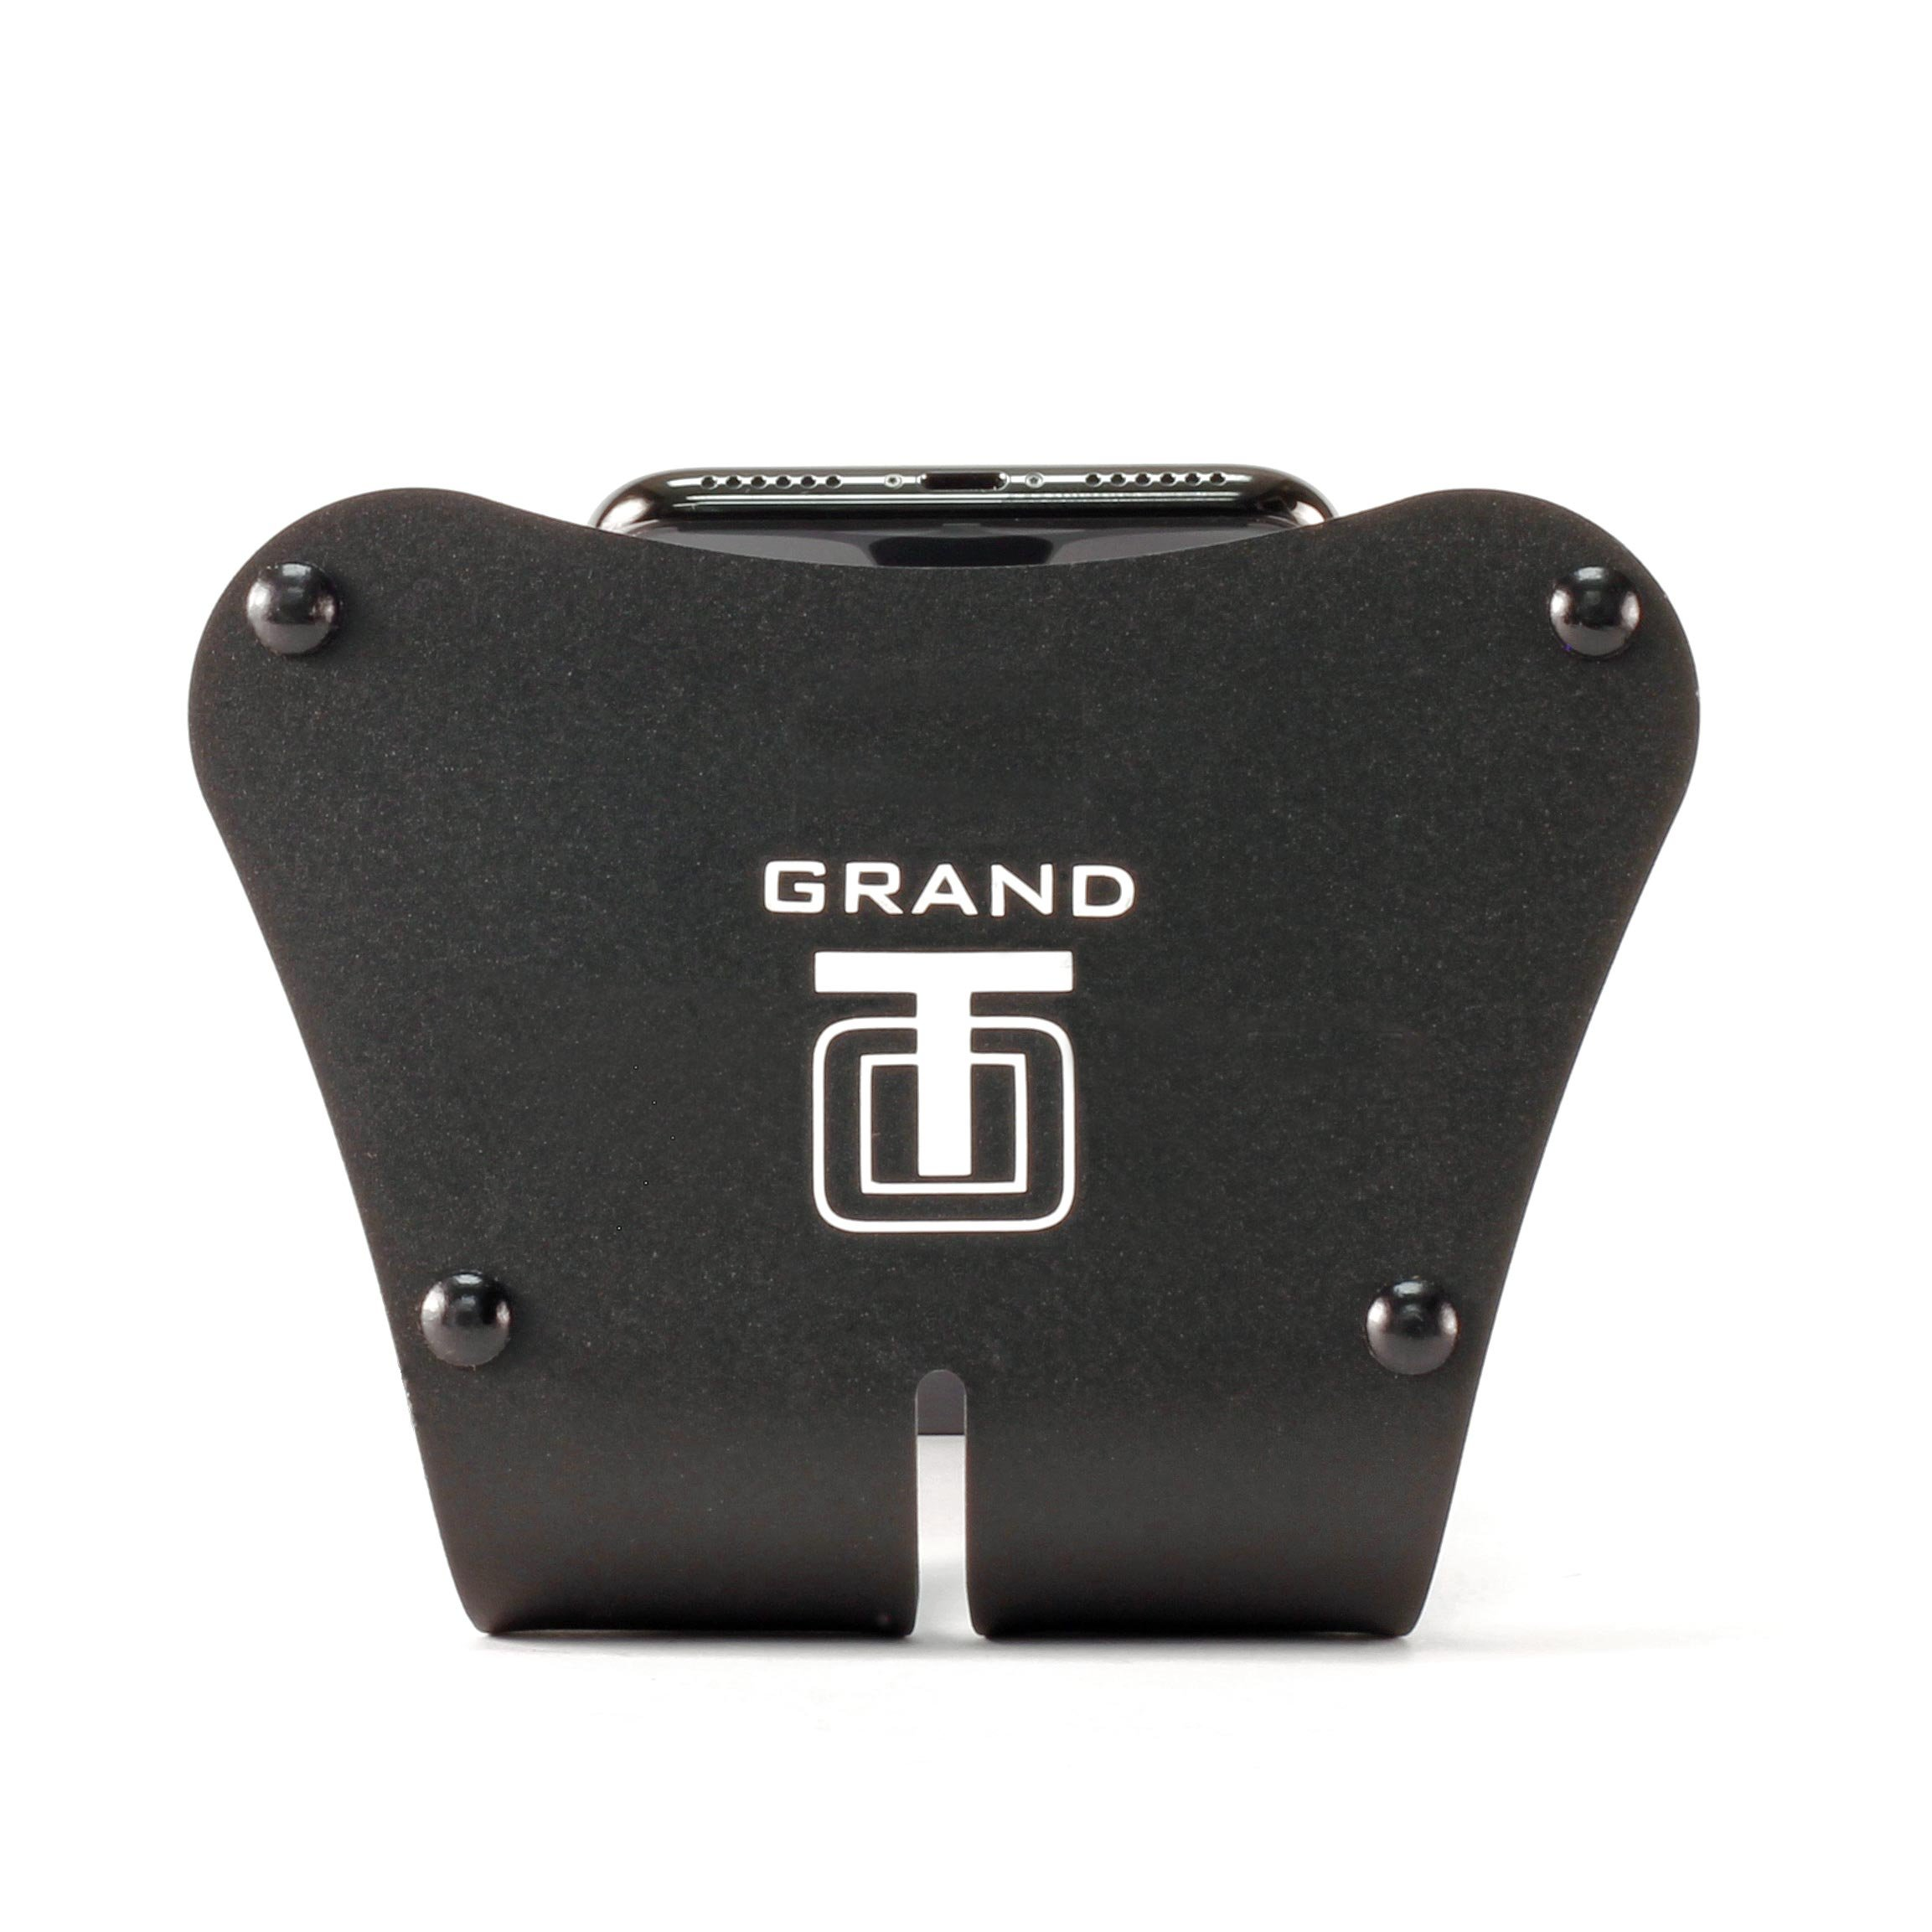 Thought Out PED5-GRAND-H Stand Rotate Holder Made in USA Compatible with Apple iPhone Xs, Xs Max, Xr (X, 8, 7, 6s, 6, SE, 5s, 5c, 5, All Plus Sizes and Handheld Devices from 2.3 to 3.5 inches Wide) by Thought Out